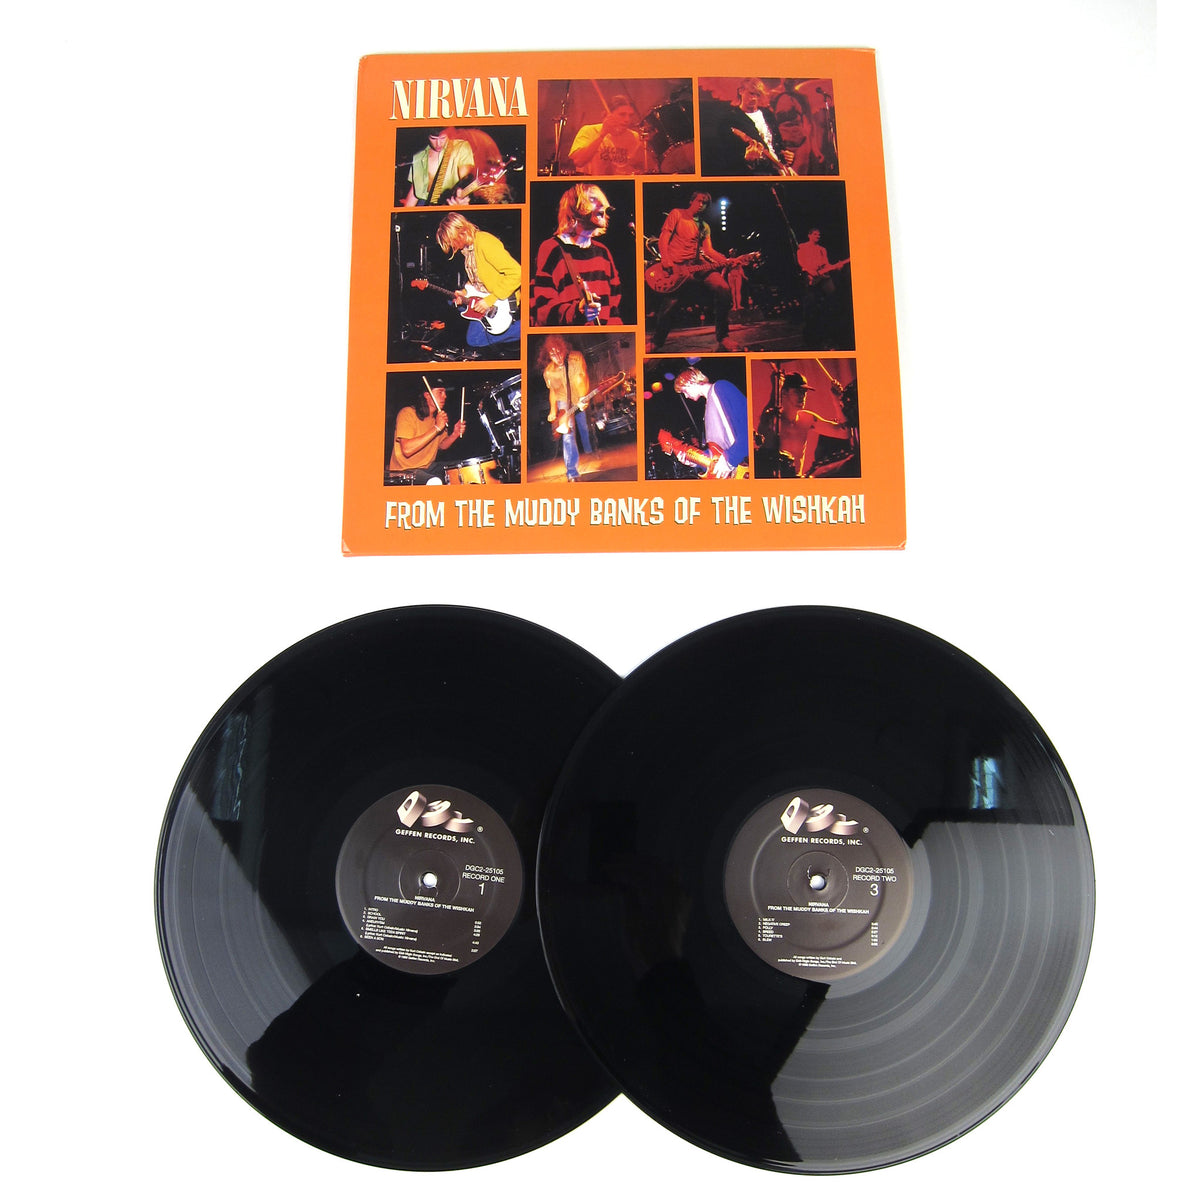 Nirvana: From The Muddy Banks Of The Wishkah Vinyl 2LP